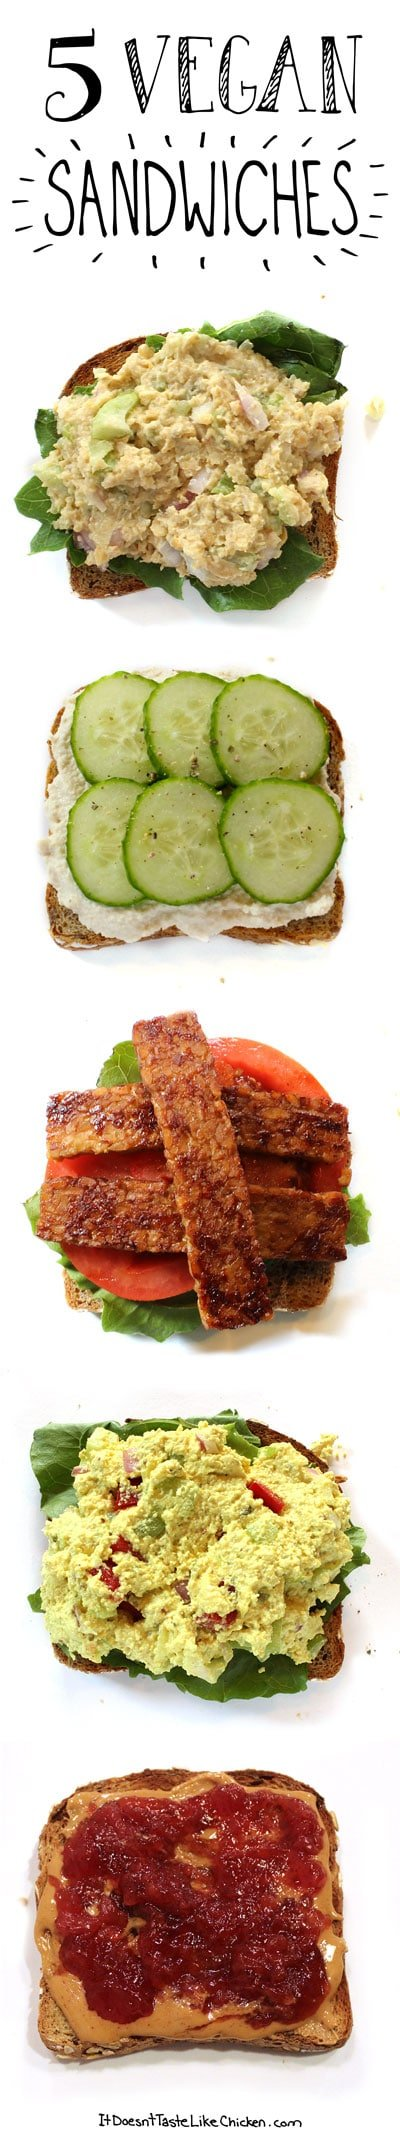 5 Vegan Sandwiches!!! One for every day of the work or school week. #itdoesnttastelikechicken